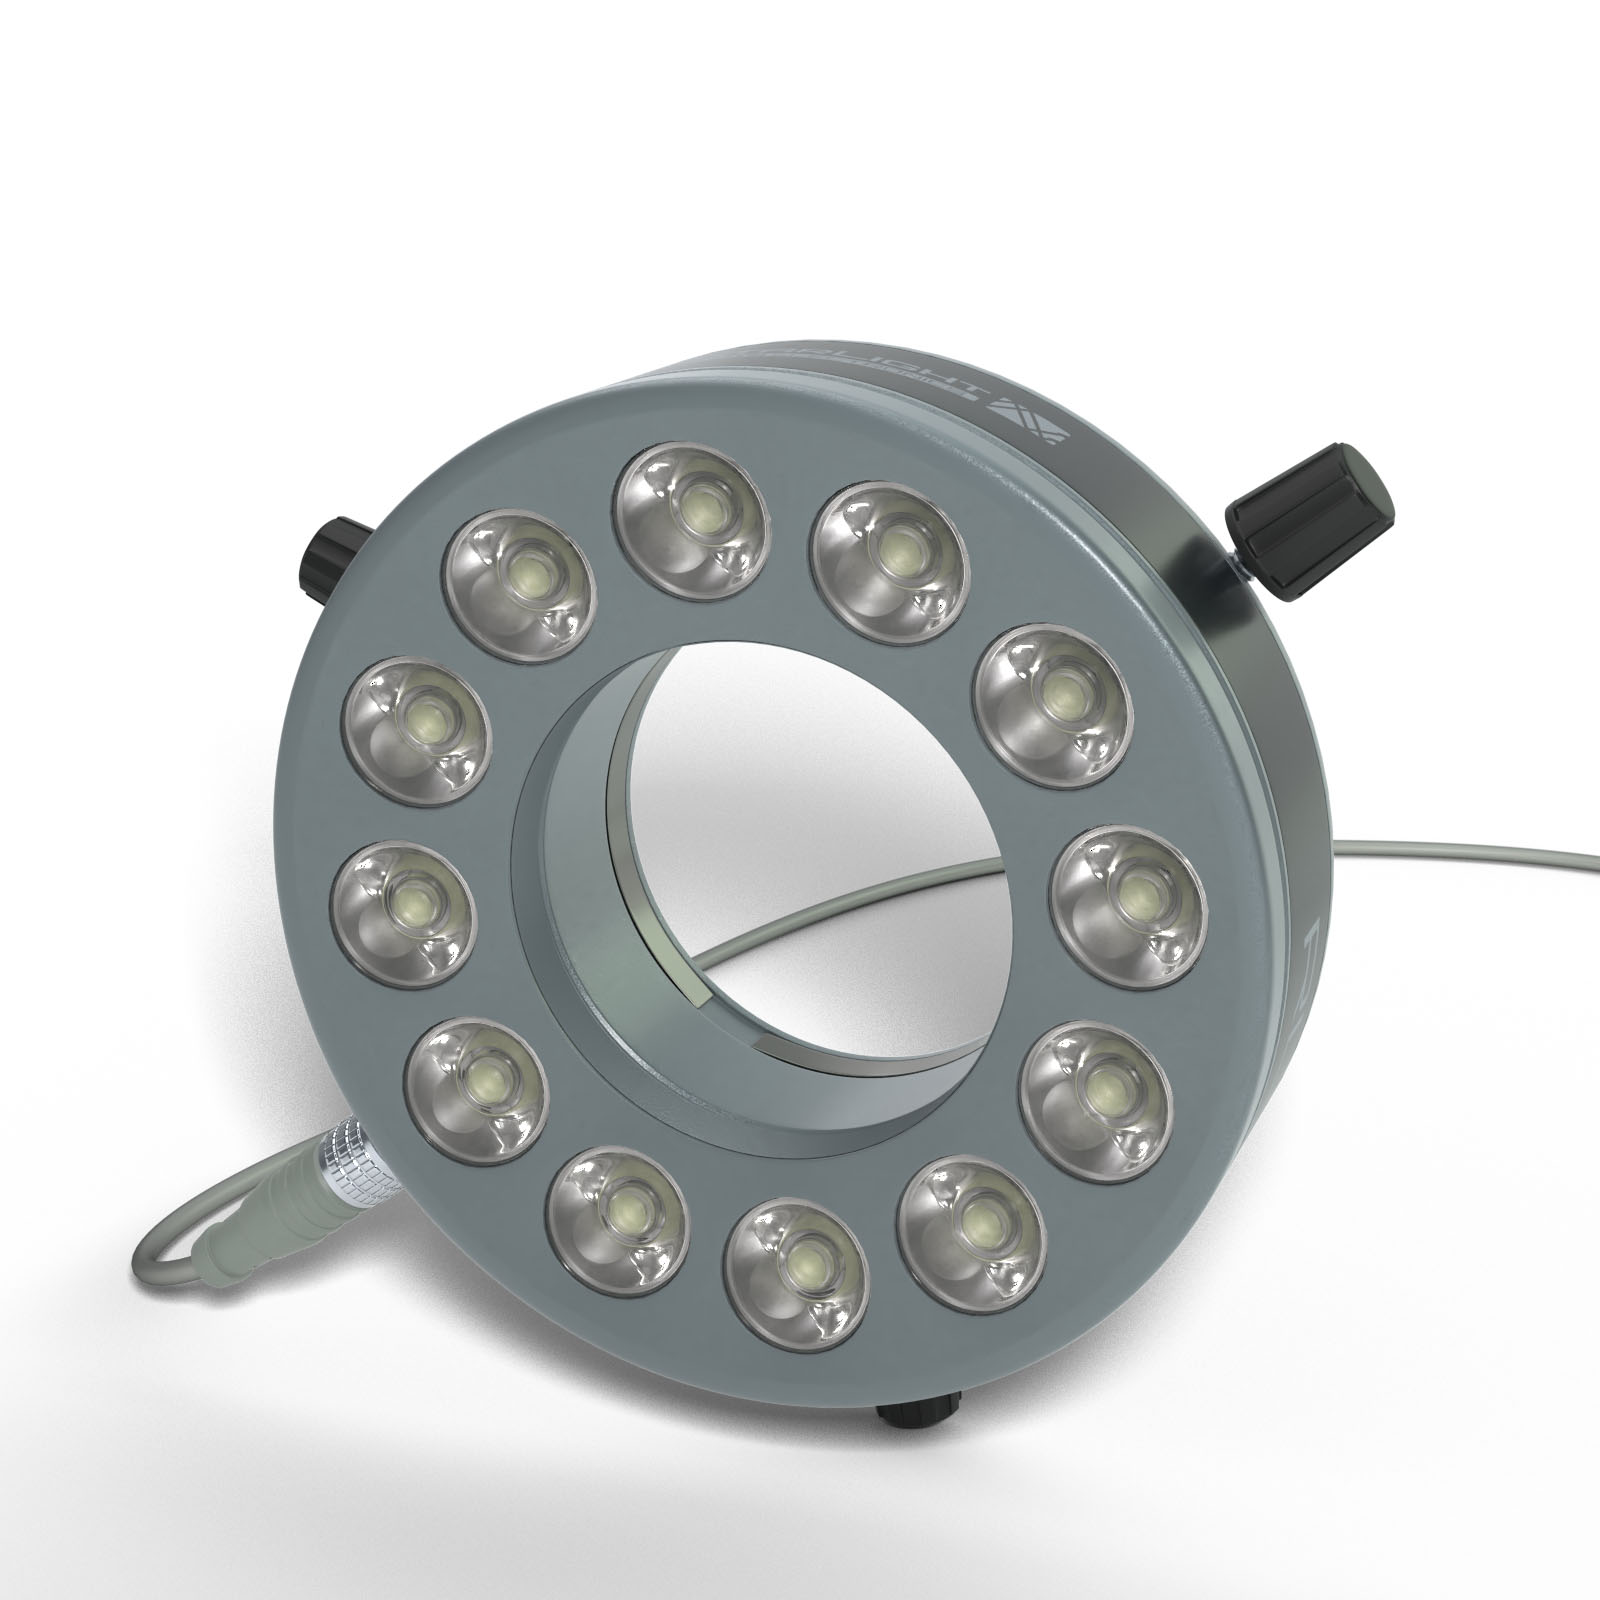 Led Light Shop 24 Led Ring Light Rl12 24v Starlight Online Shop